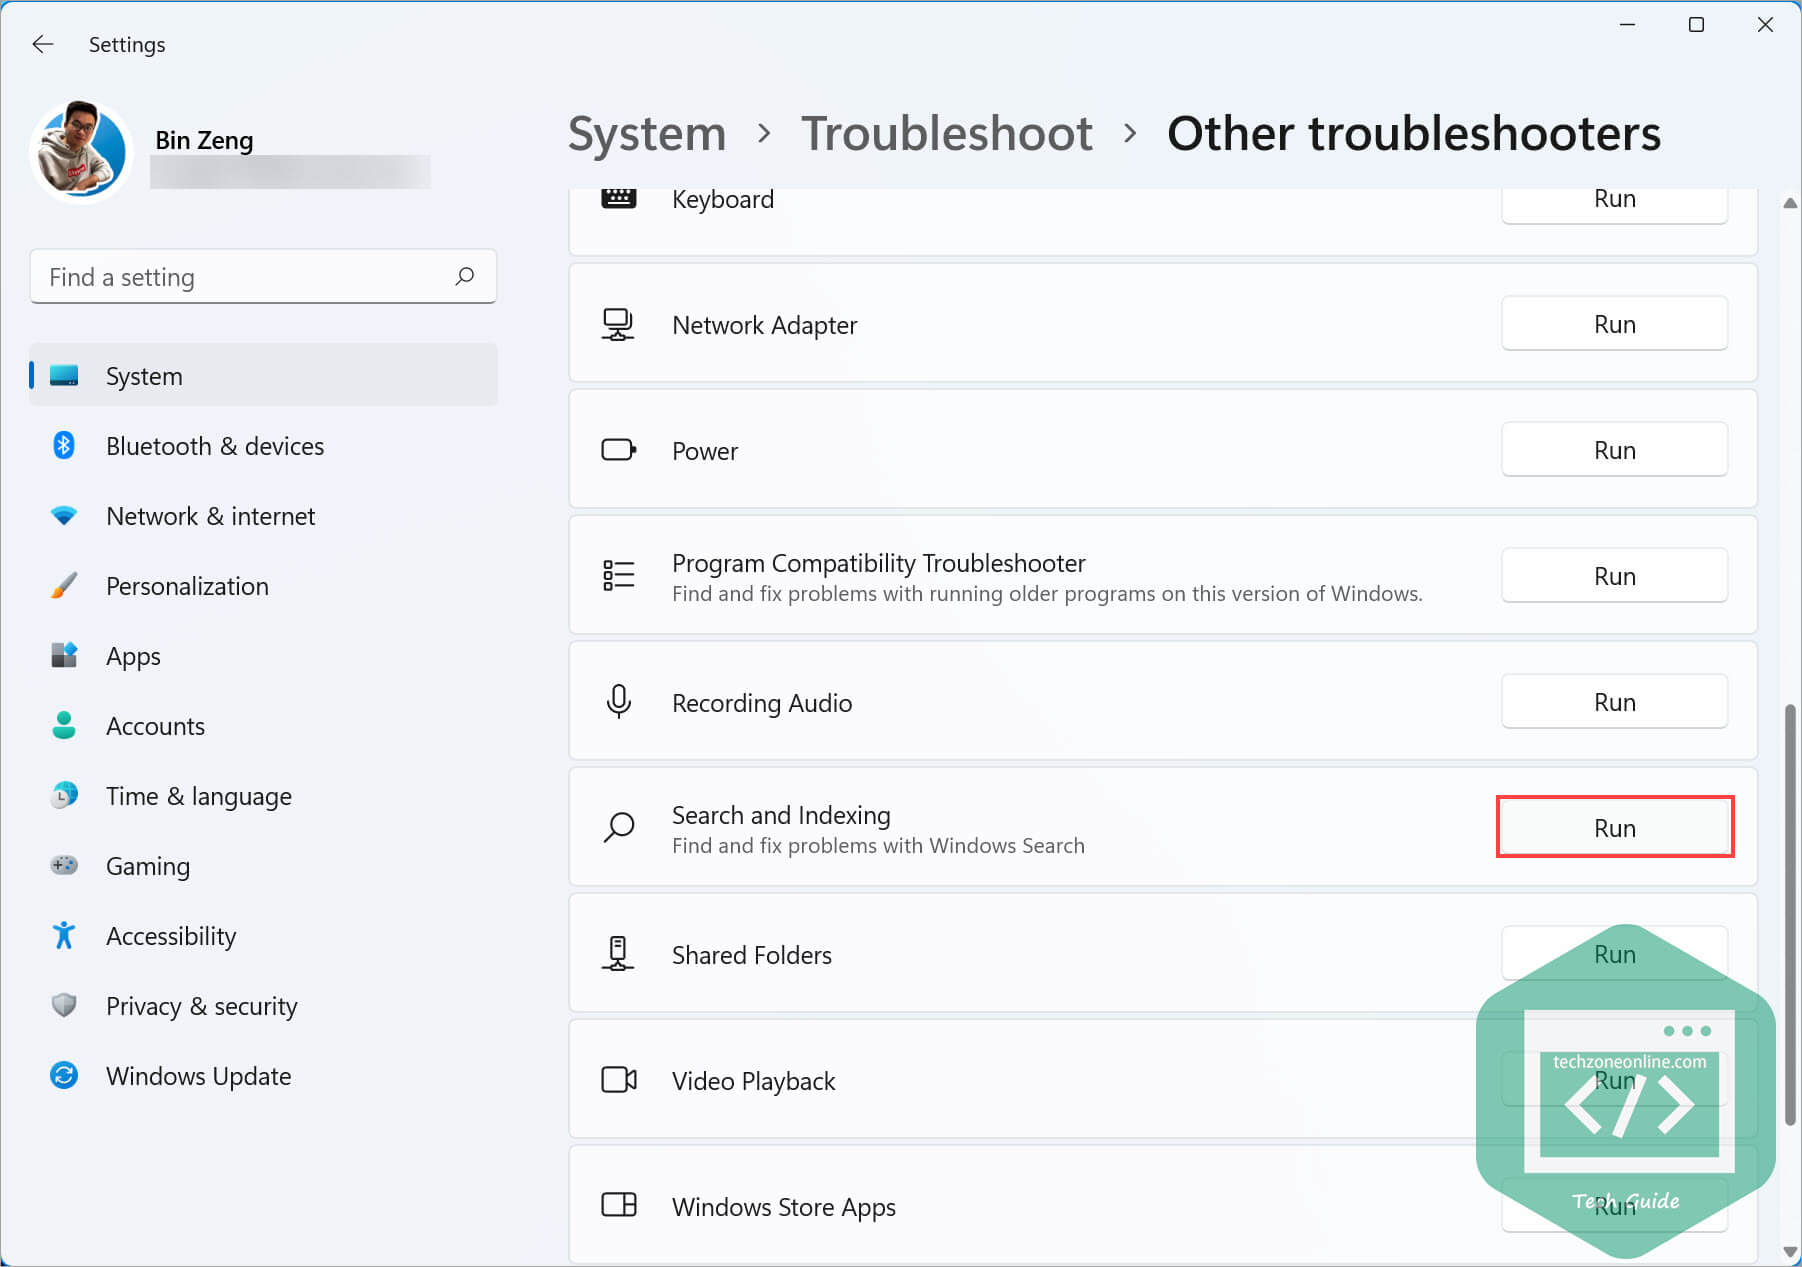 Windows 11 Search and Indexing troubleshooter